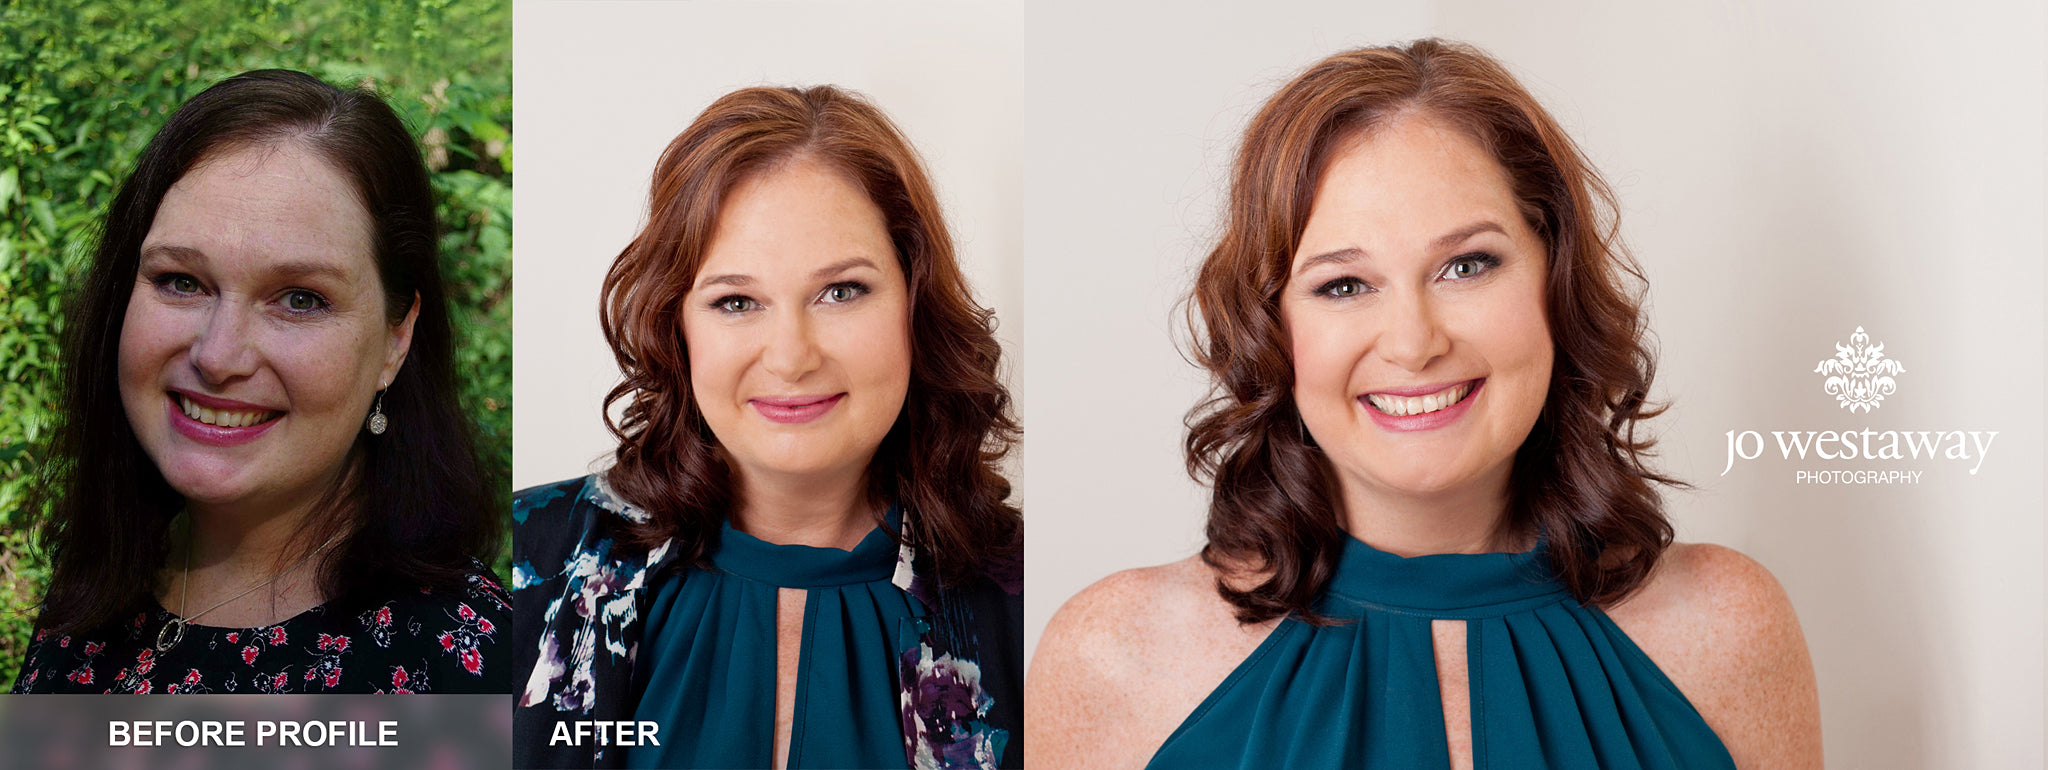 before and after headshots and personal branding photos - how to confident